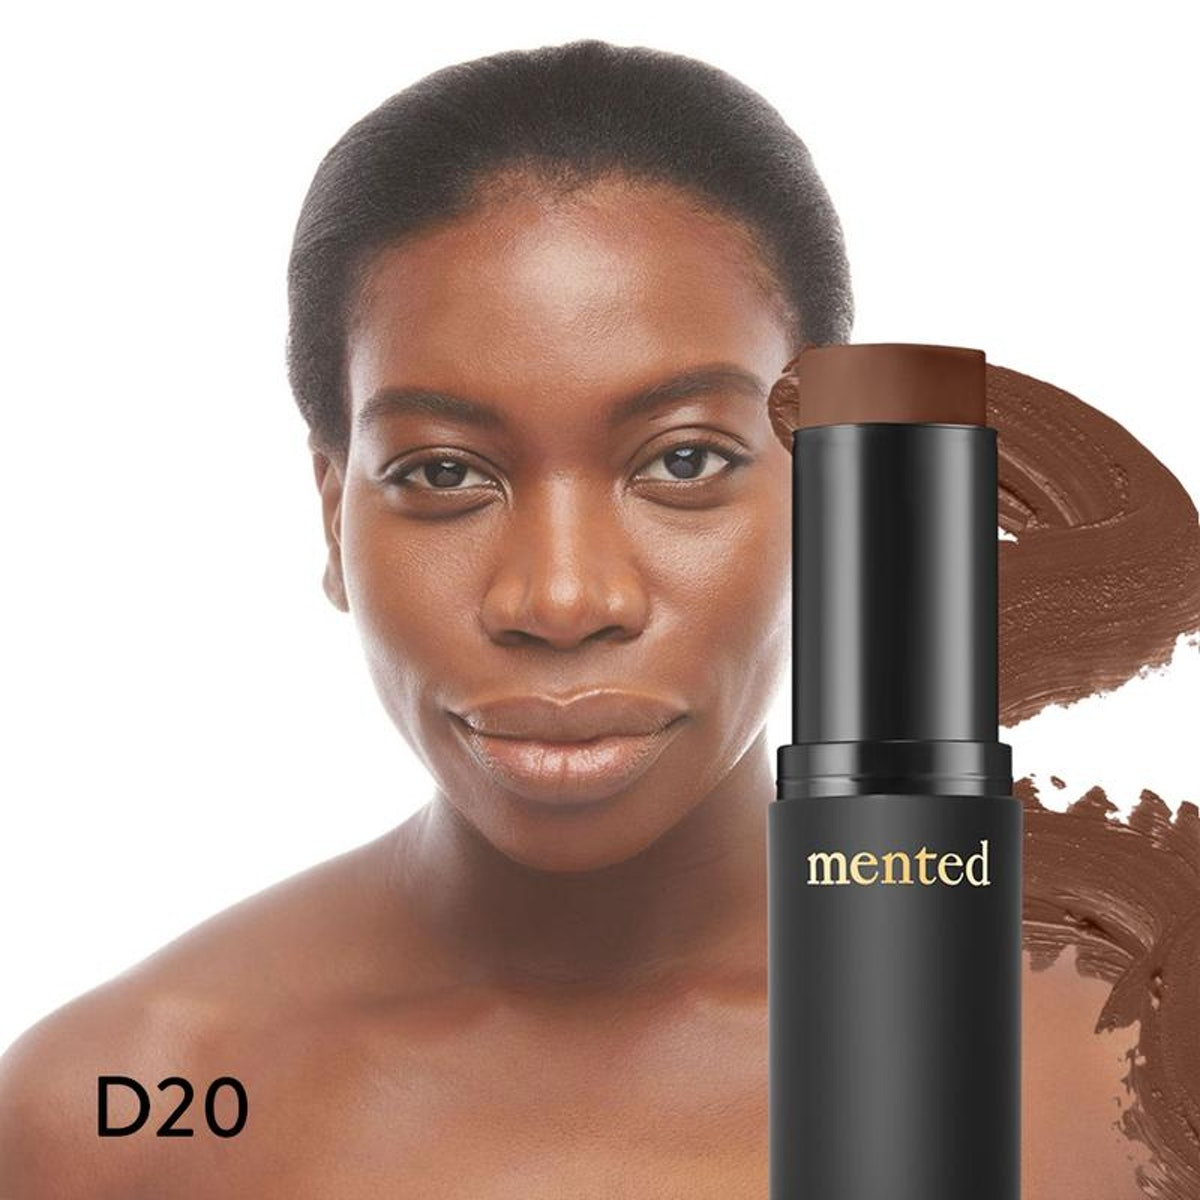 Mented Cosmetics Skin by Mented